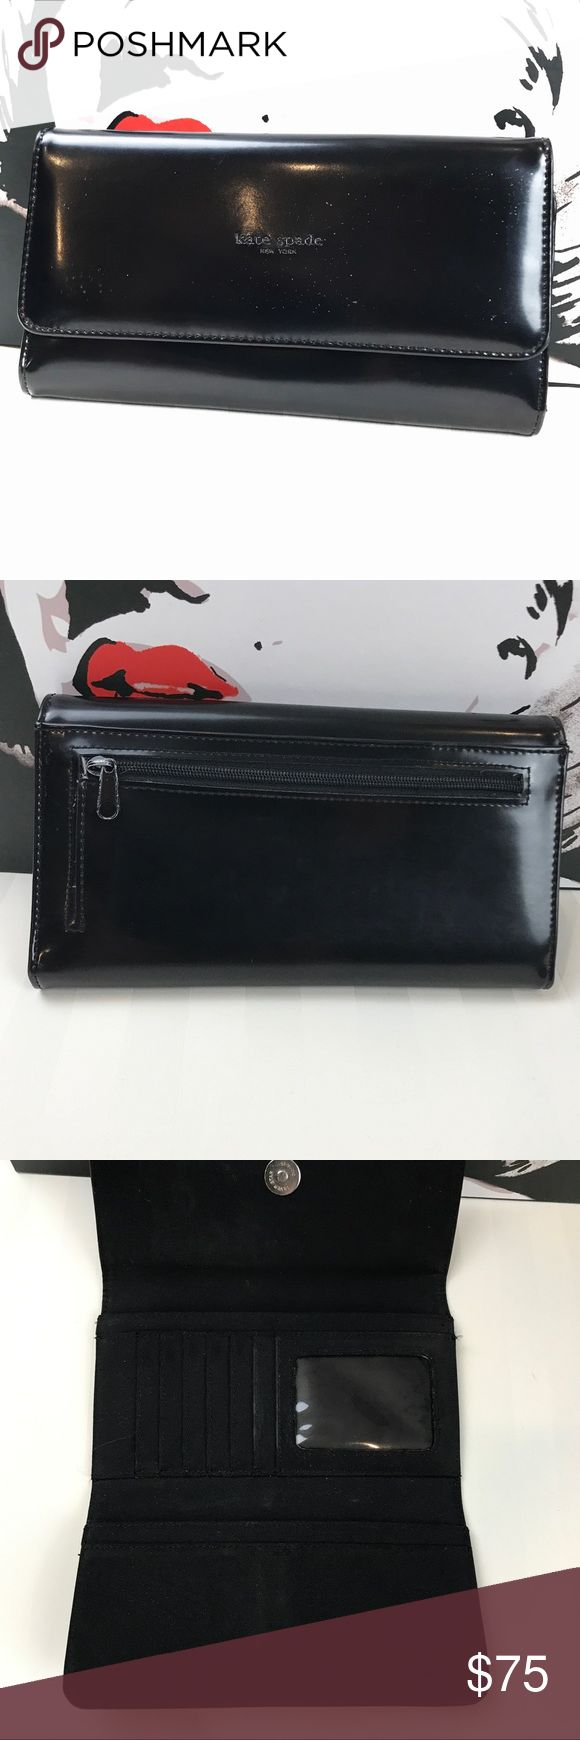 "kate spade Black Trifold Wallet Gently used Kate Spade, trifold patent leather, snap closure, zipper coin pouch on back, fabric interior, 6 card slots& id slot, 4 long slots.  This is pre-loved, in Great condition, please look at last photo there are some wear marks.  ||  7.5"" wide, 4"" high, 1"" thick.                                                                